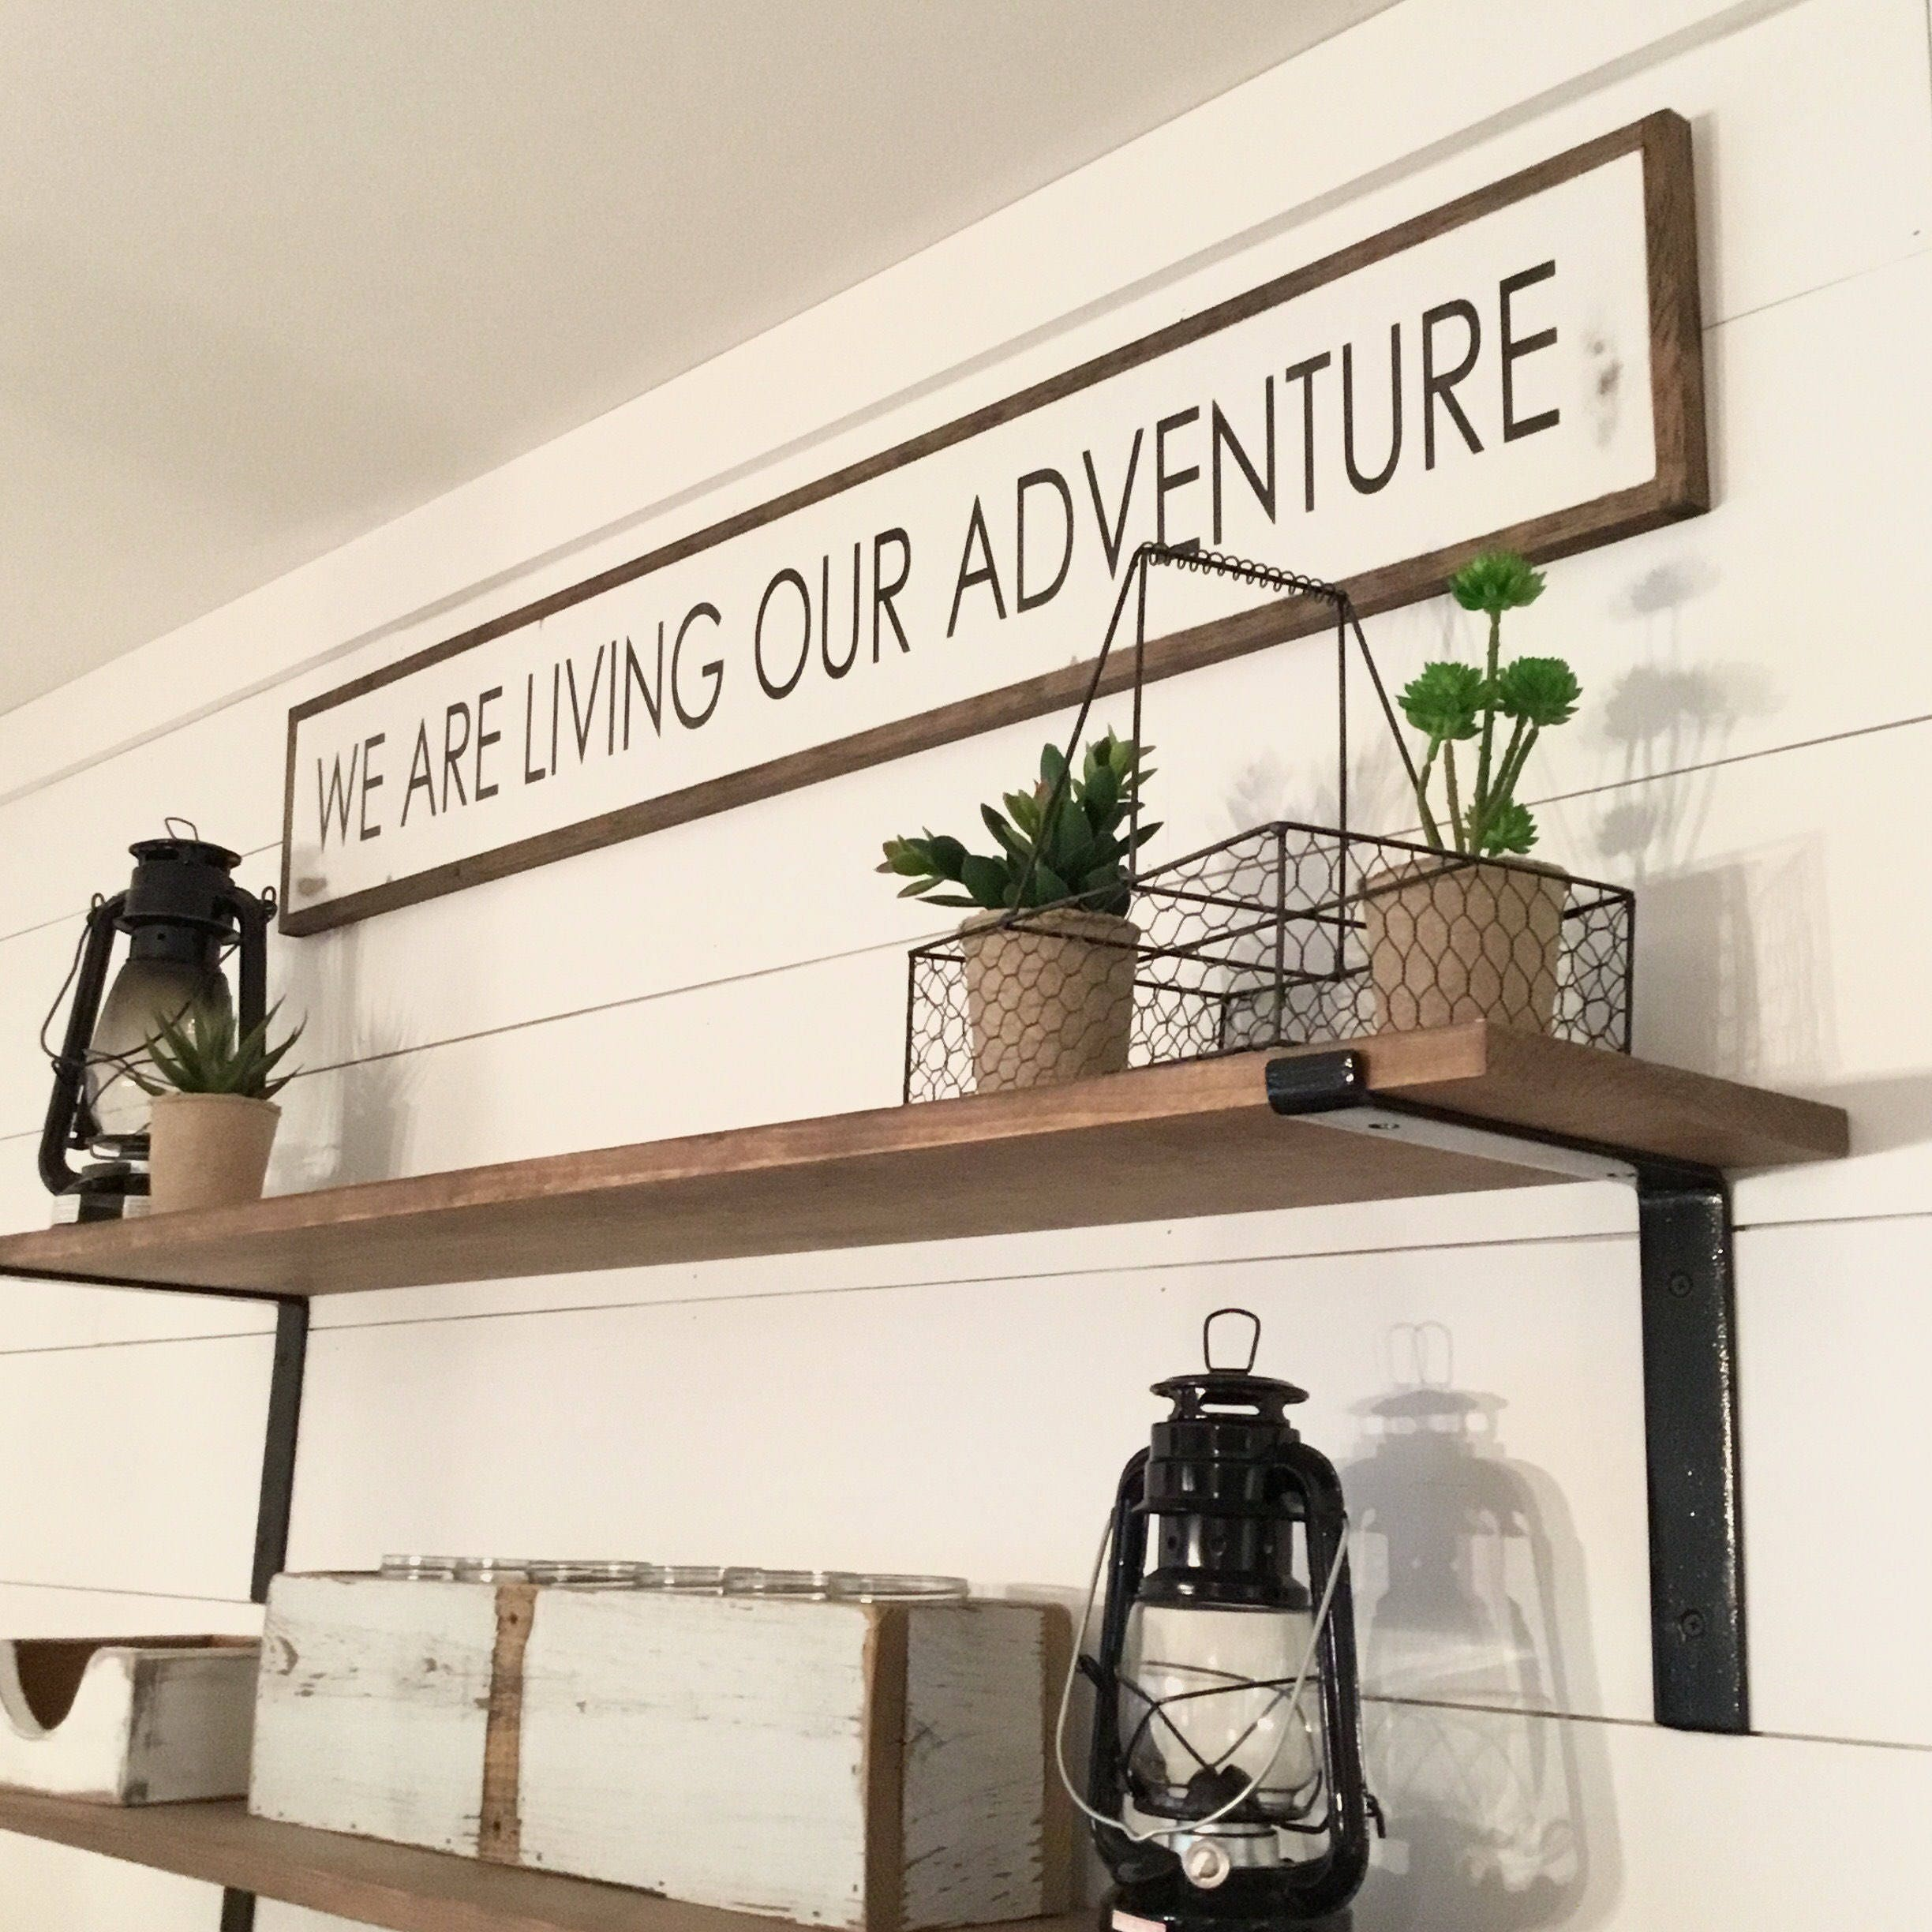 We Are Living Our Adventure 7x48 Sign Distressed Shabby Chic Wooden Sign Painted Wall Art Elegant Farmhouse Decor